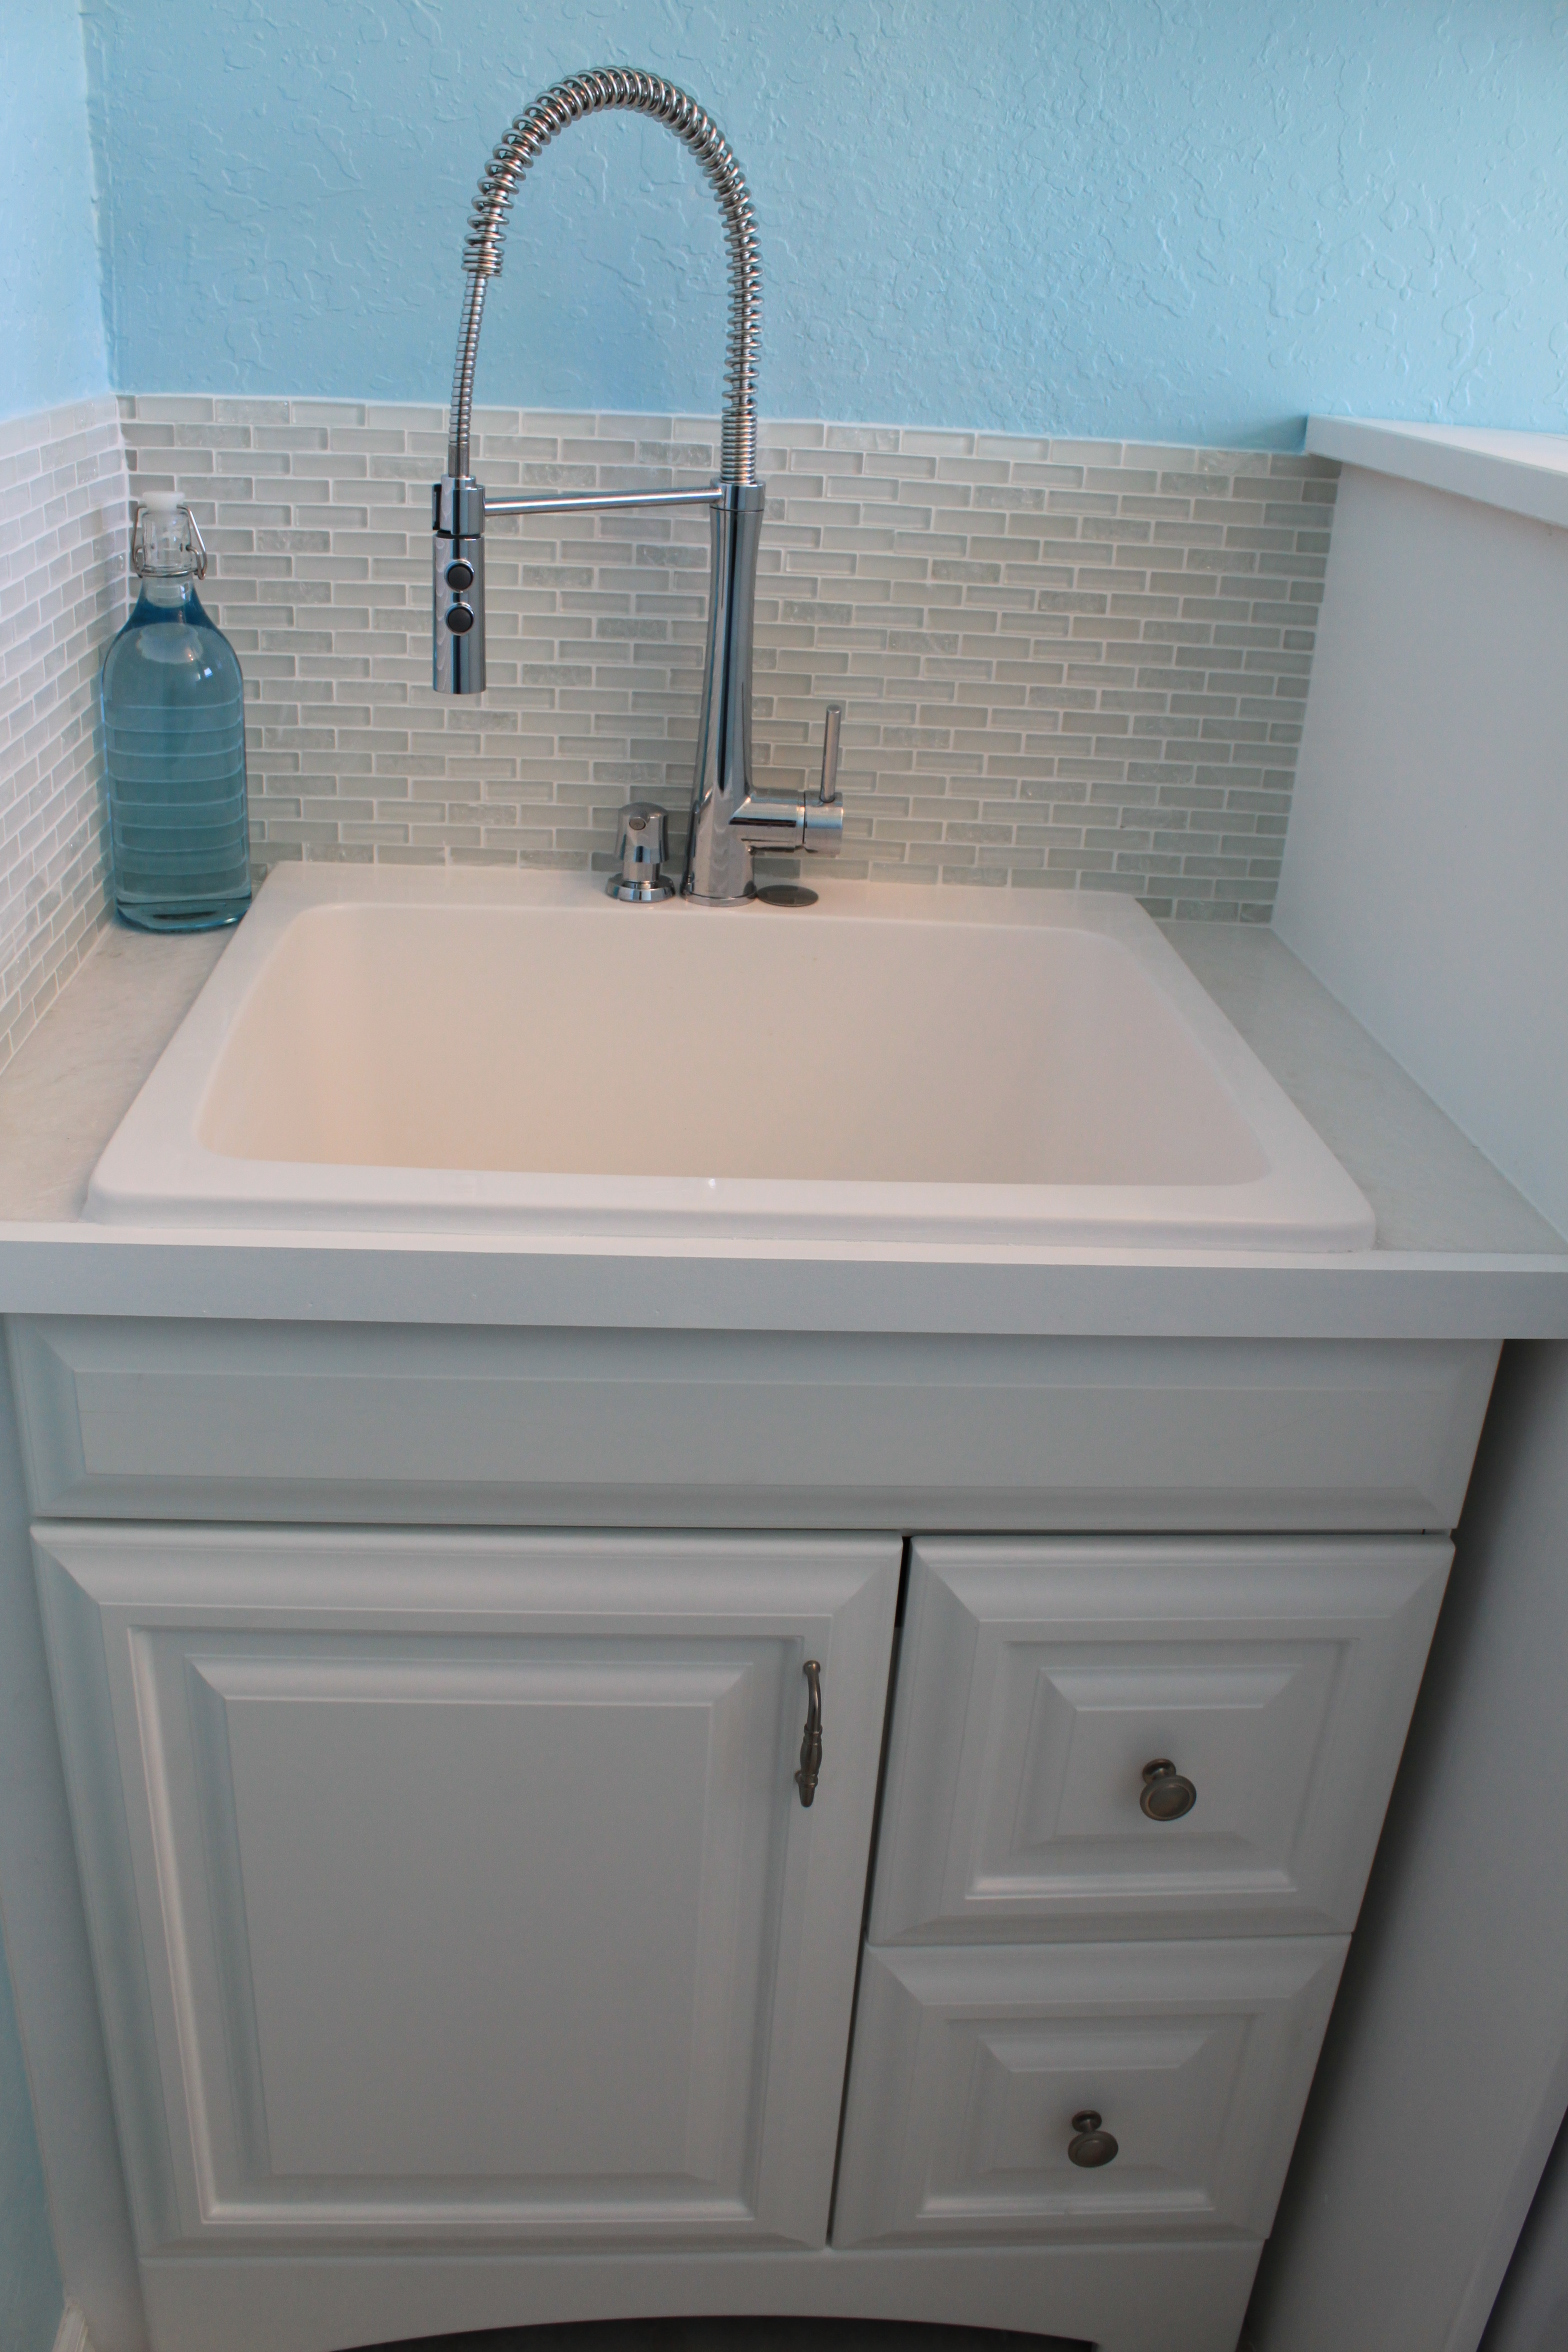 Laundry Sink, Faucet and Tiled Backsplash